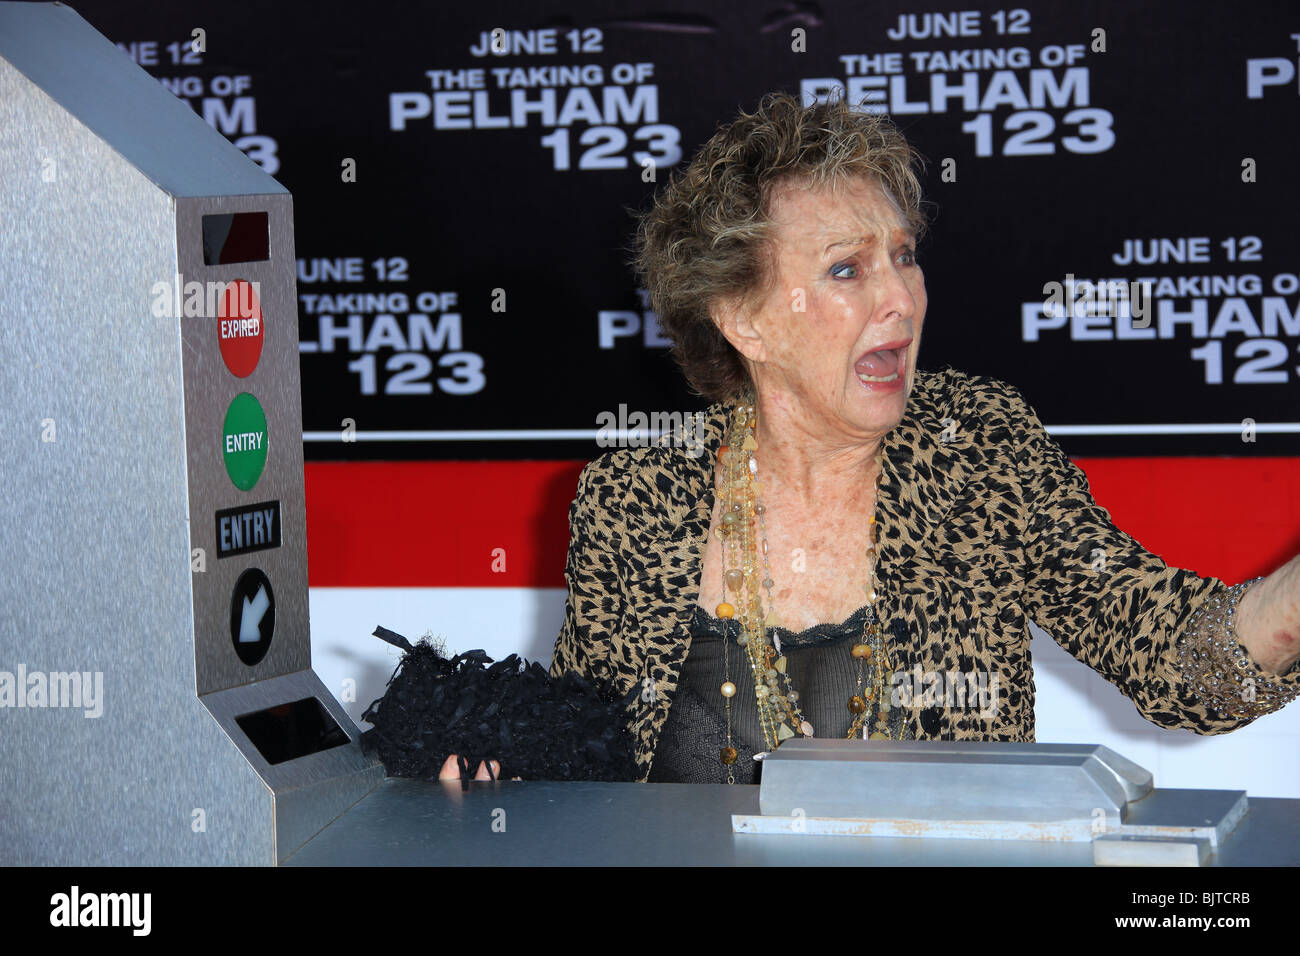 CLORIS LEACHMAN THE TAKING OF PELHAM 123 LOS ANGELES PREMIERE WESTWOOD CA USA 04 June 2009 - Stock Image